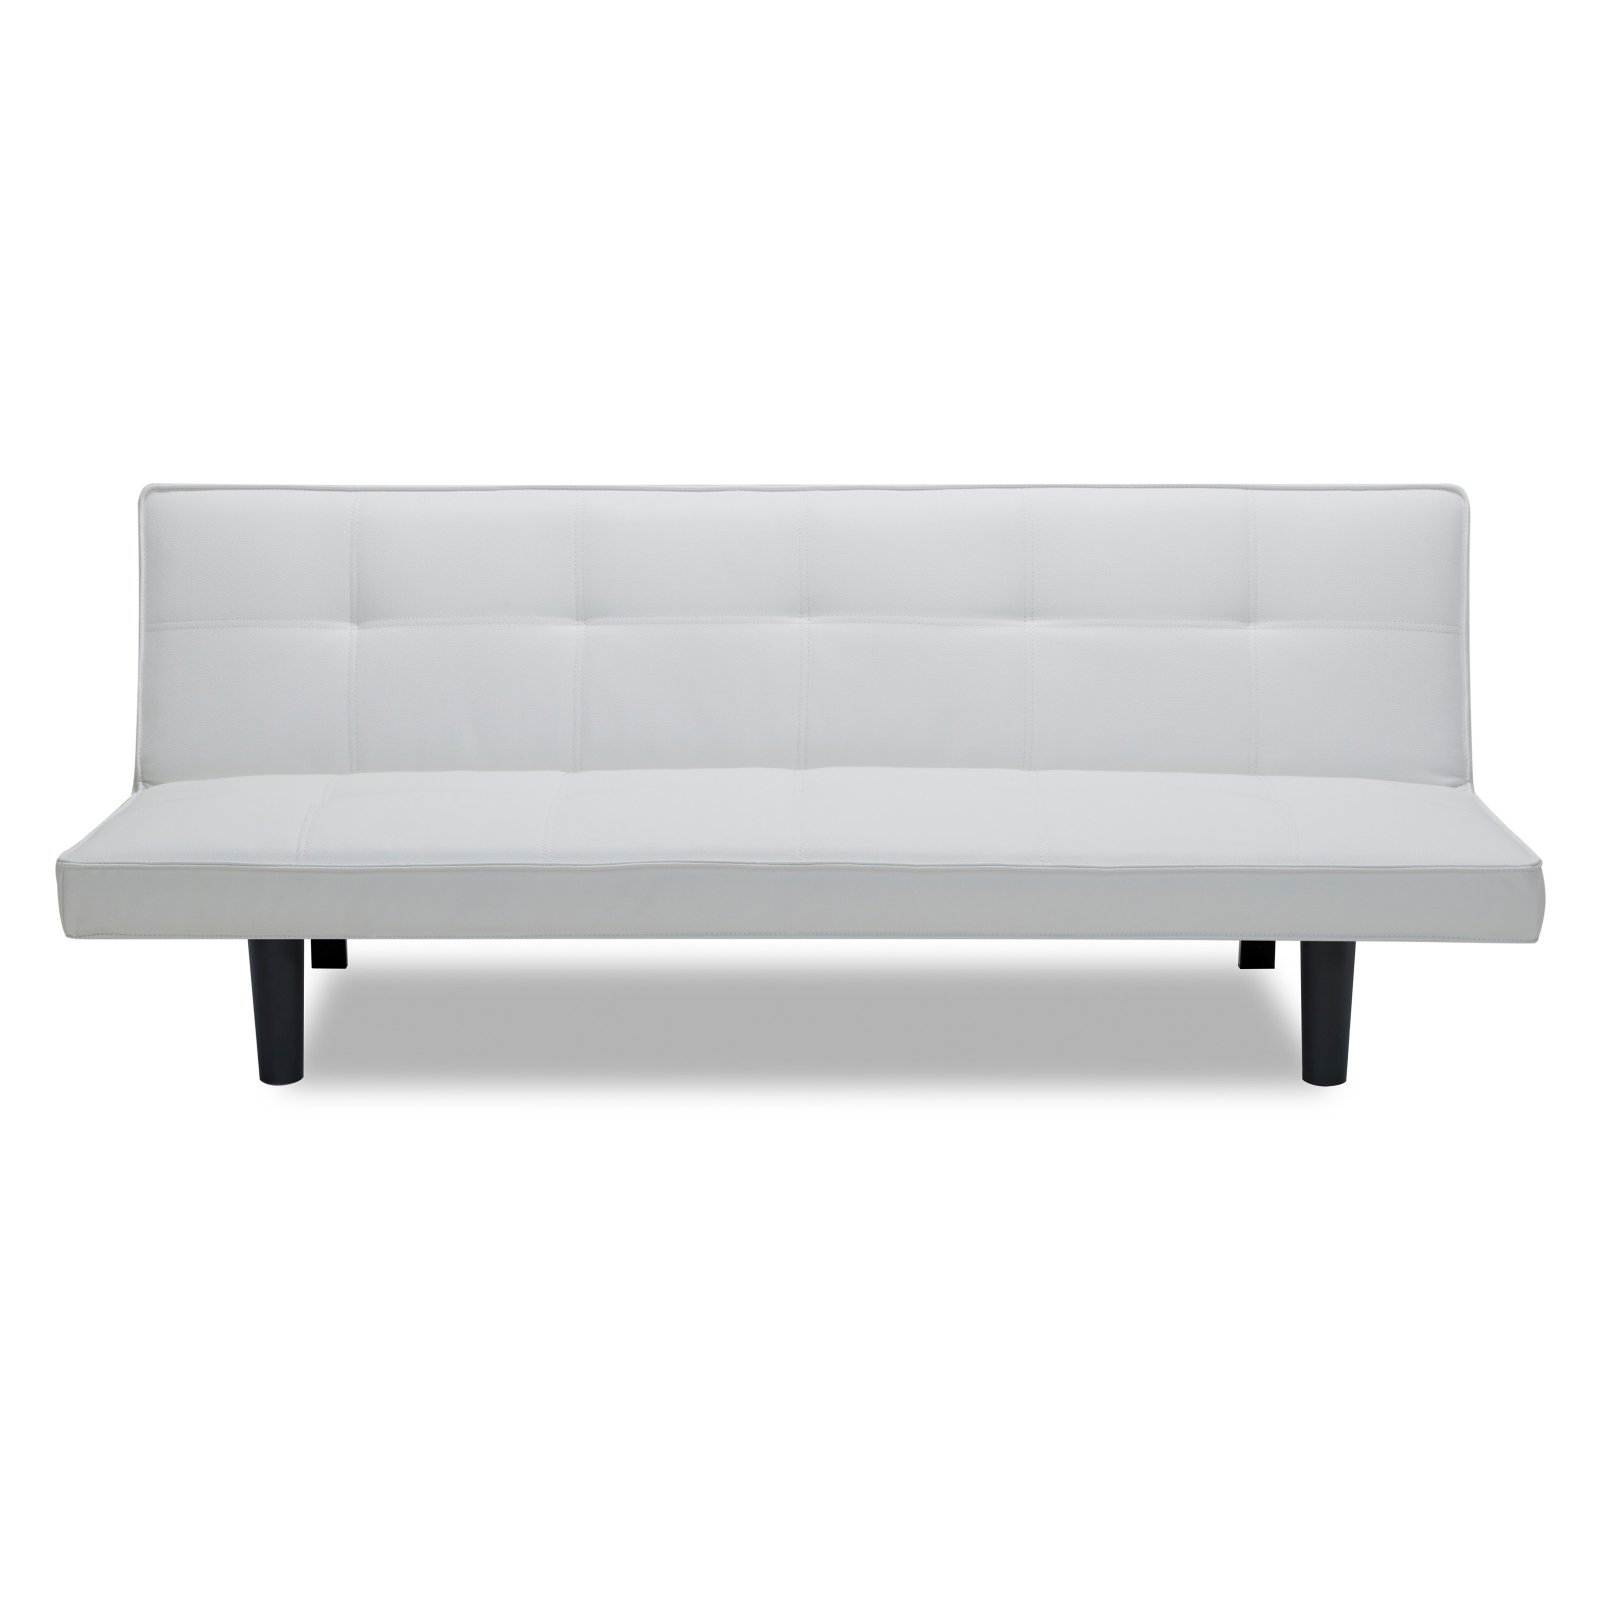 Incroyable Gold Sparrow Hudson White Convertible Sofa Bed